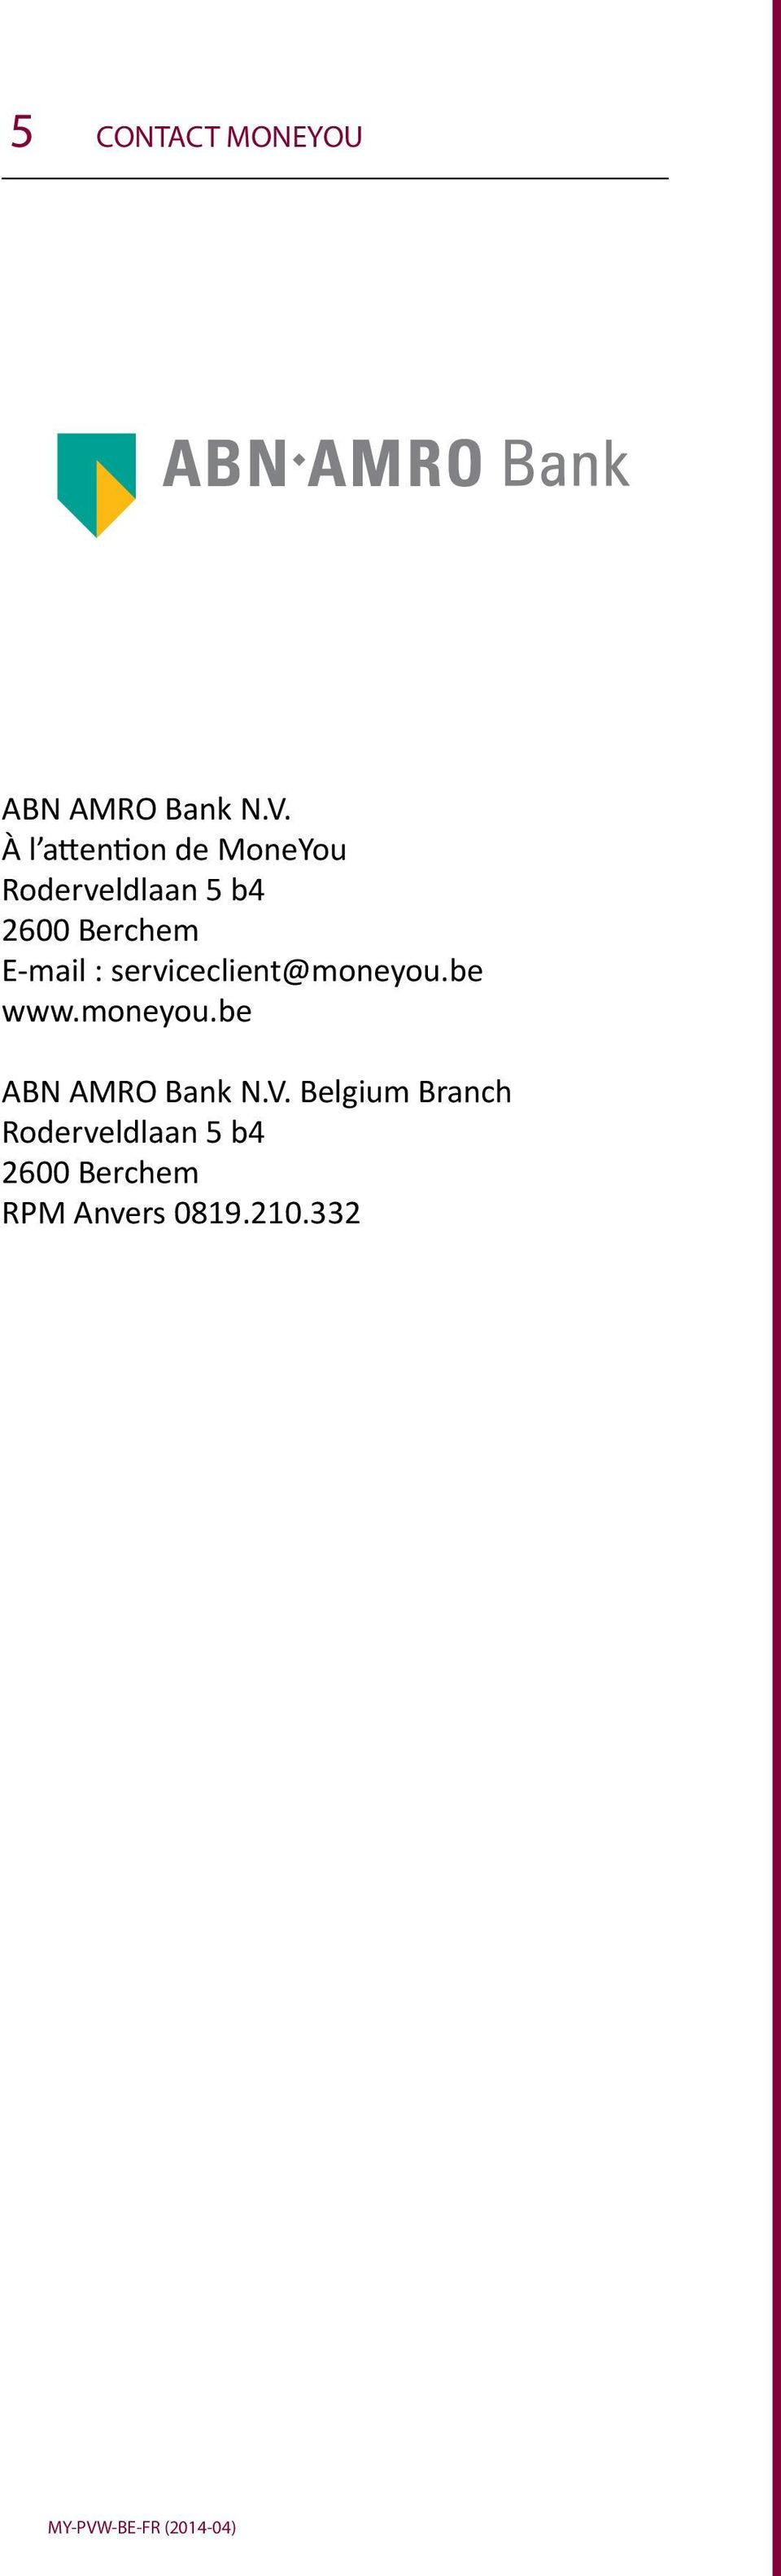 : serviceclient@moneyou.be www.moneyou.be ABN AMRO Bank N.V.